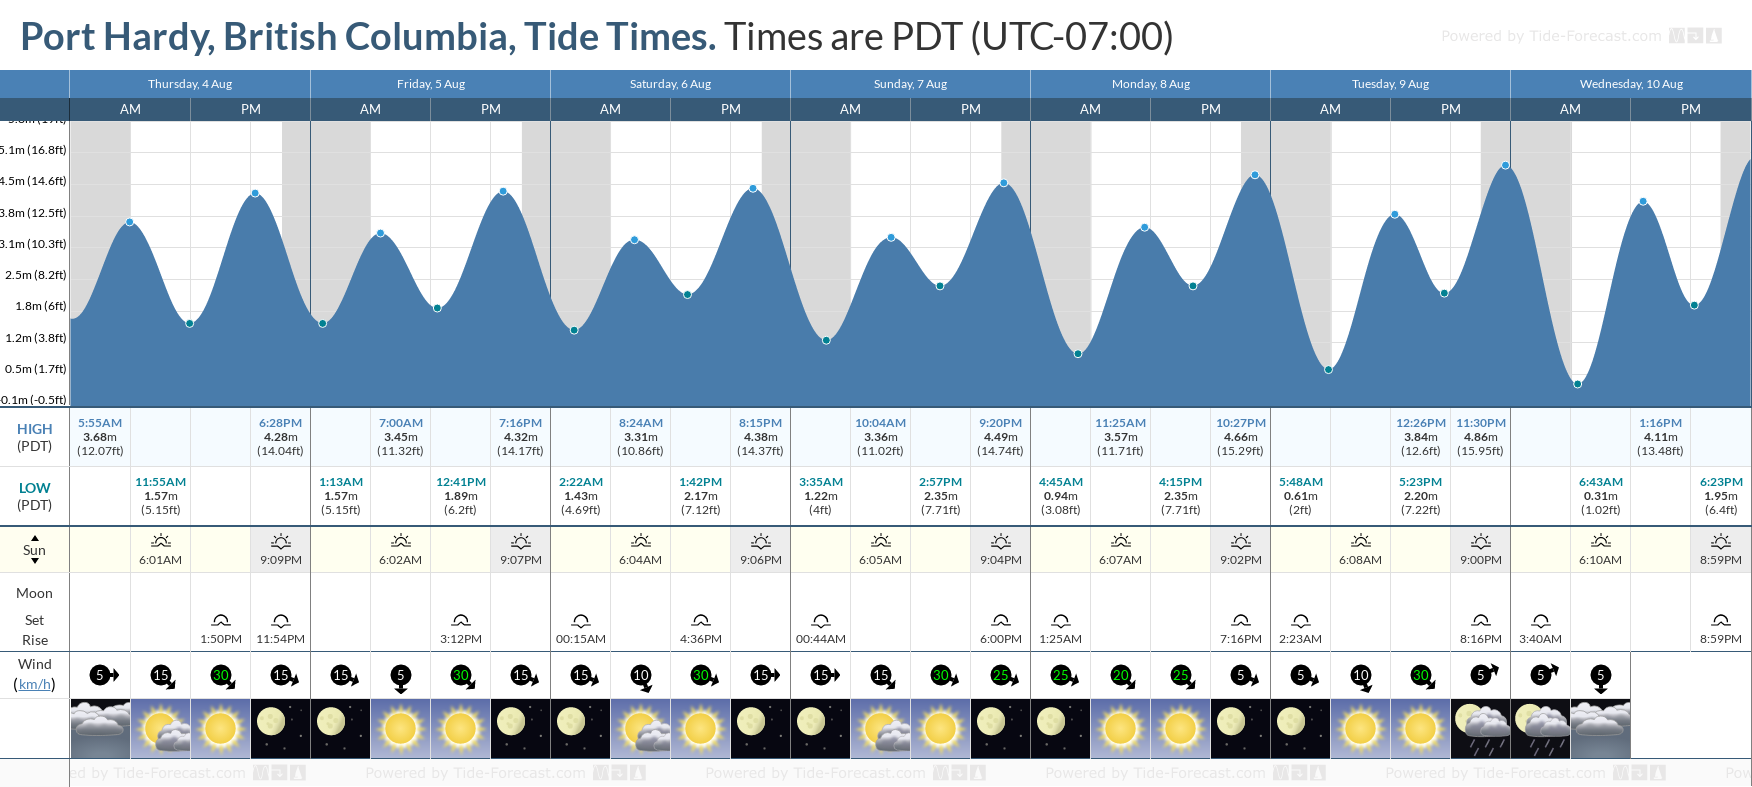 Port Hardy, British Columbia Tide Chart including high and low tide tide times for the next 7 days